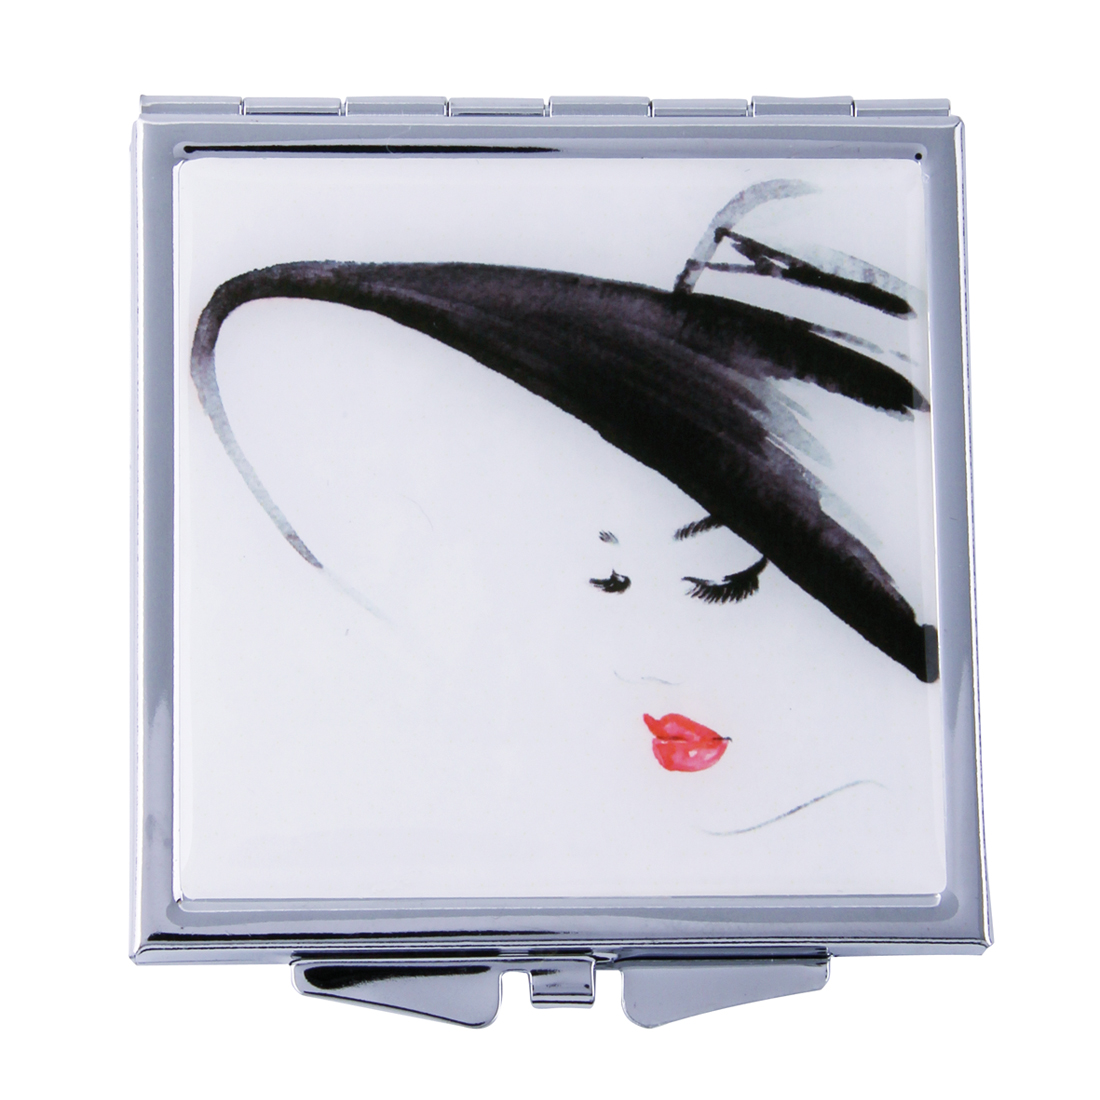 MC 411 - Silhouette Lady Mirror Compact 'Deux'- MC411